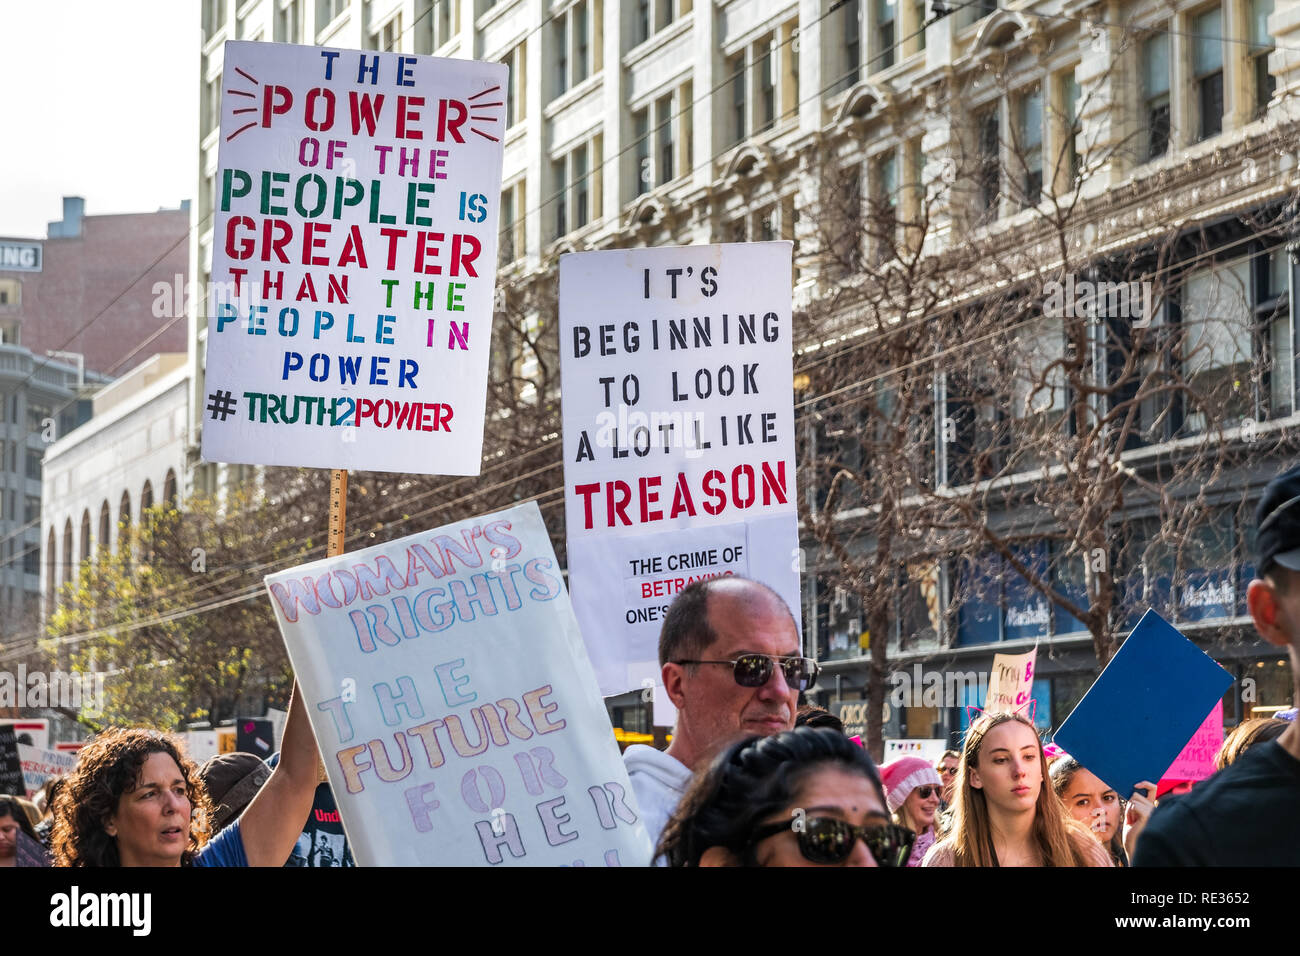 San Francisco, USA. 19th Jan 2019.  Participants to the Women's March event hold signs with various massages while marching on Market street in downtown San Francisco - Stock Image